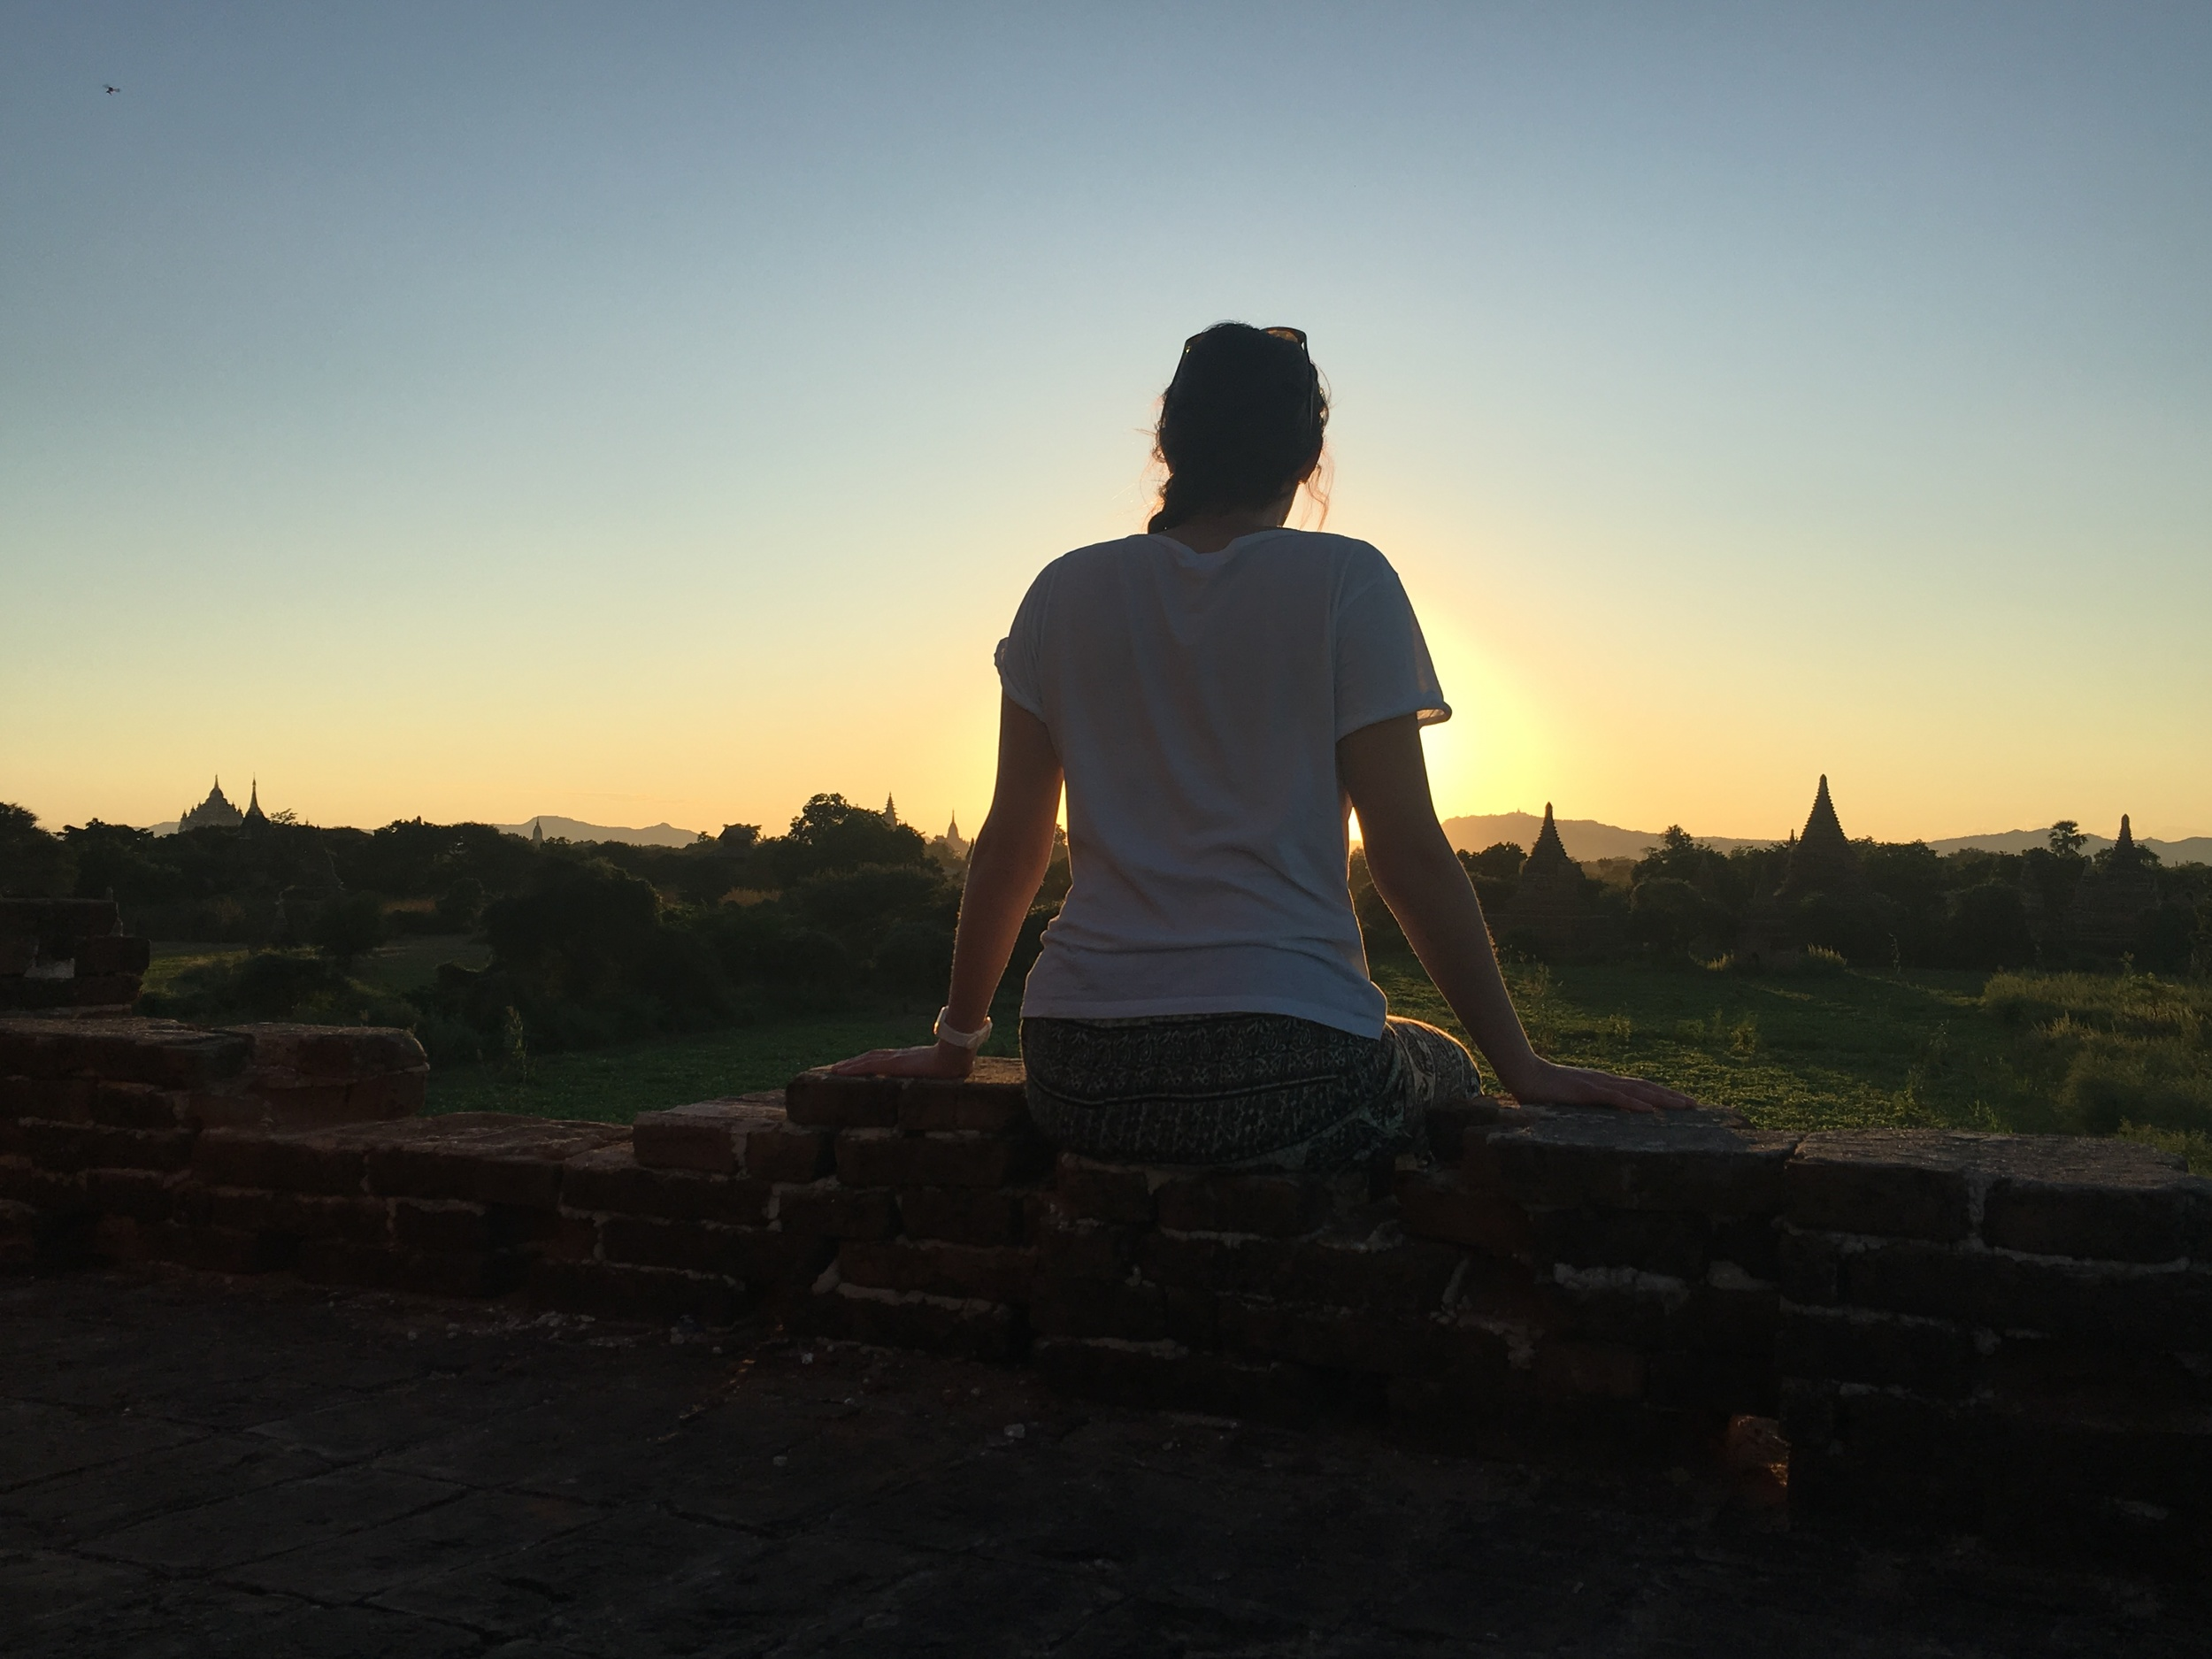 Unreal sunset in Bagan